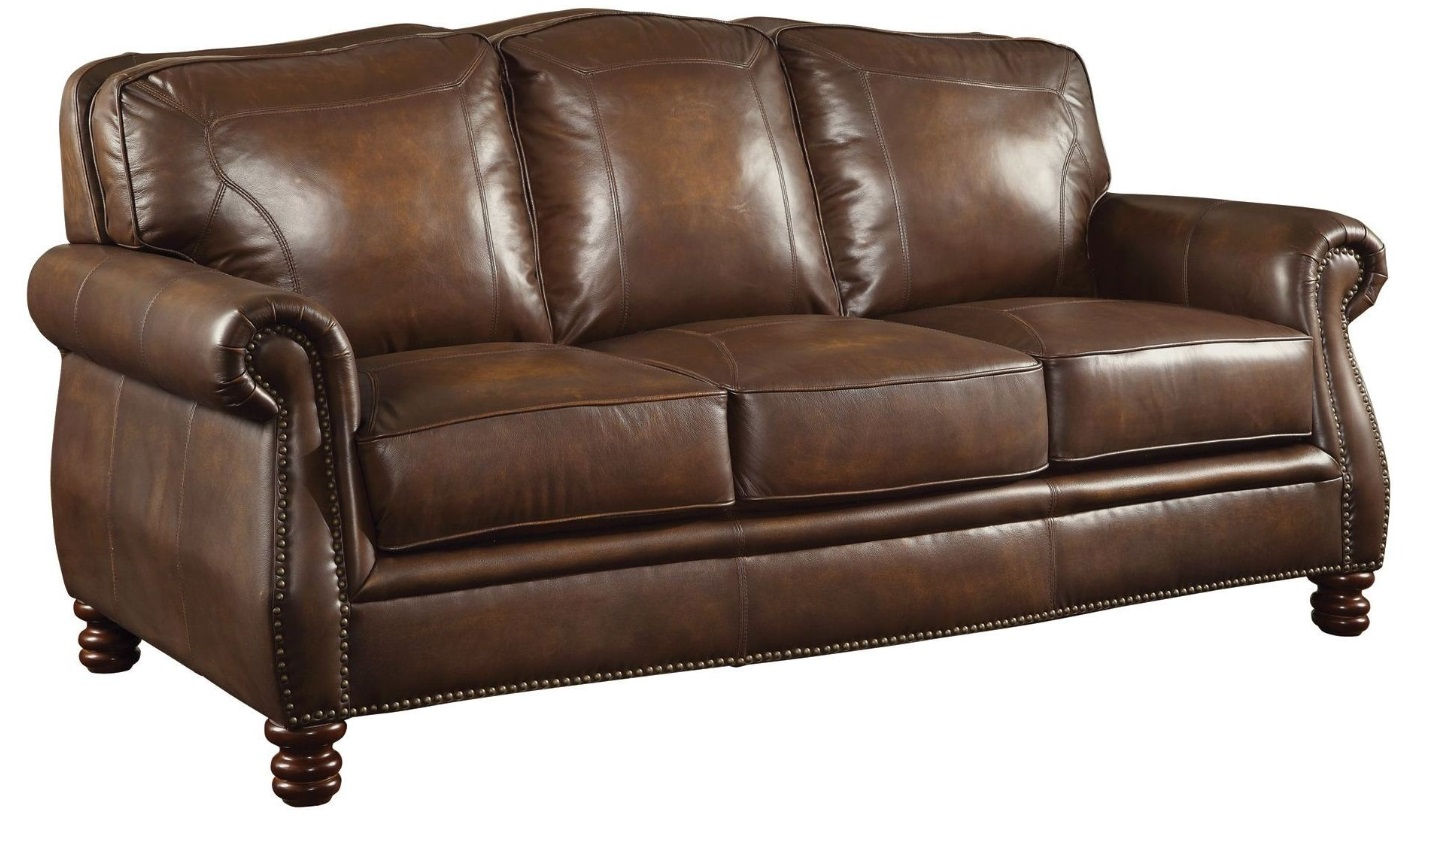 Coaster Furniture Montbrook Brown Leather Sofa 503981 : Montbrook Brown Leather sofa 503981 from www.usafurniturewarehouse.com size 1432 x 848 jpeg 240kB